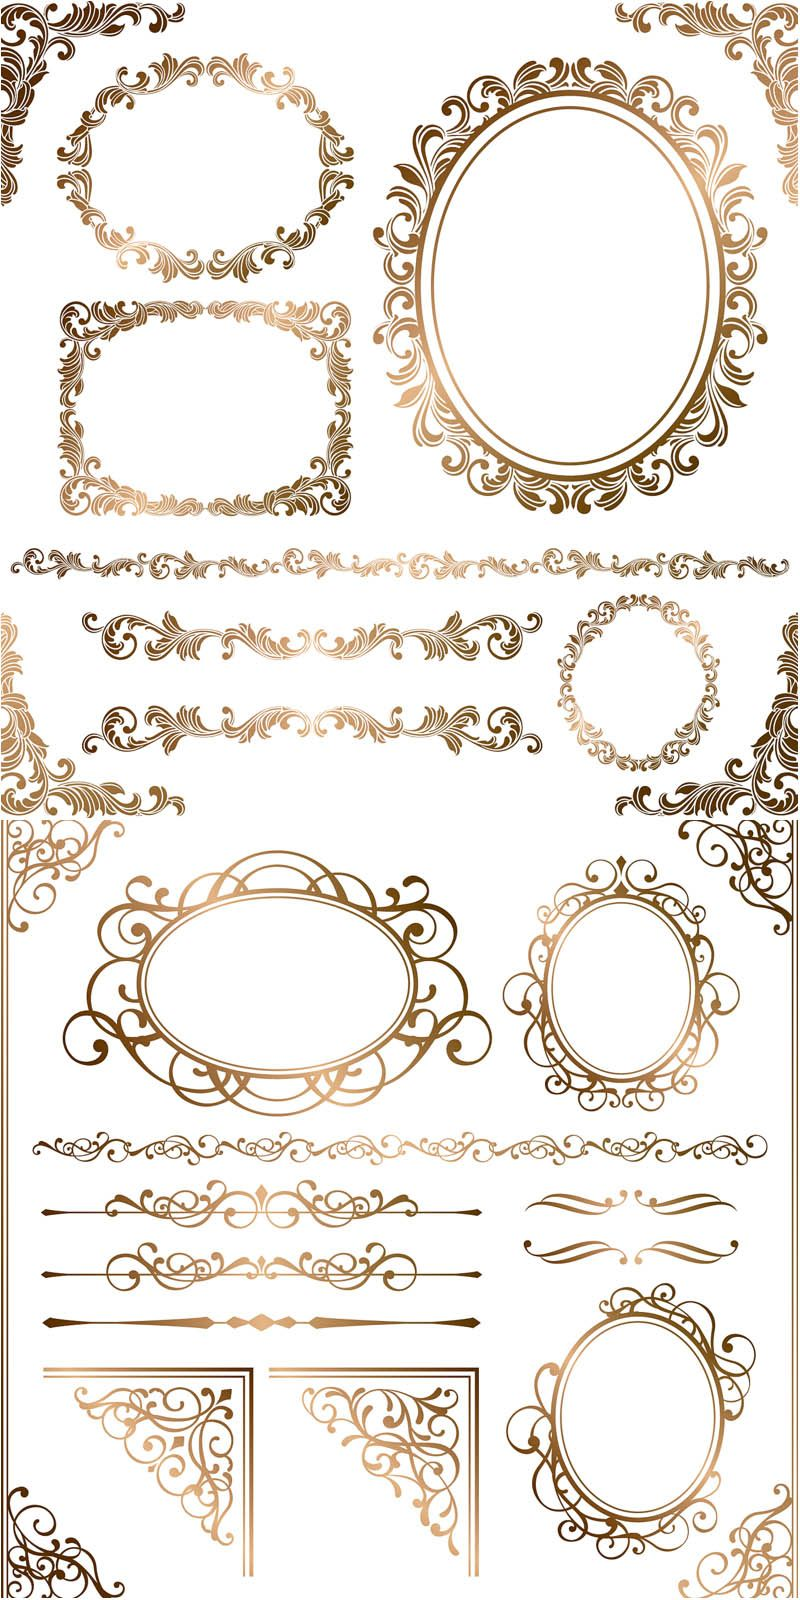 Baroque floral frames, corners and borders vector